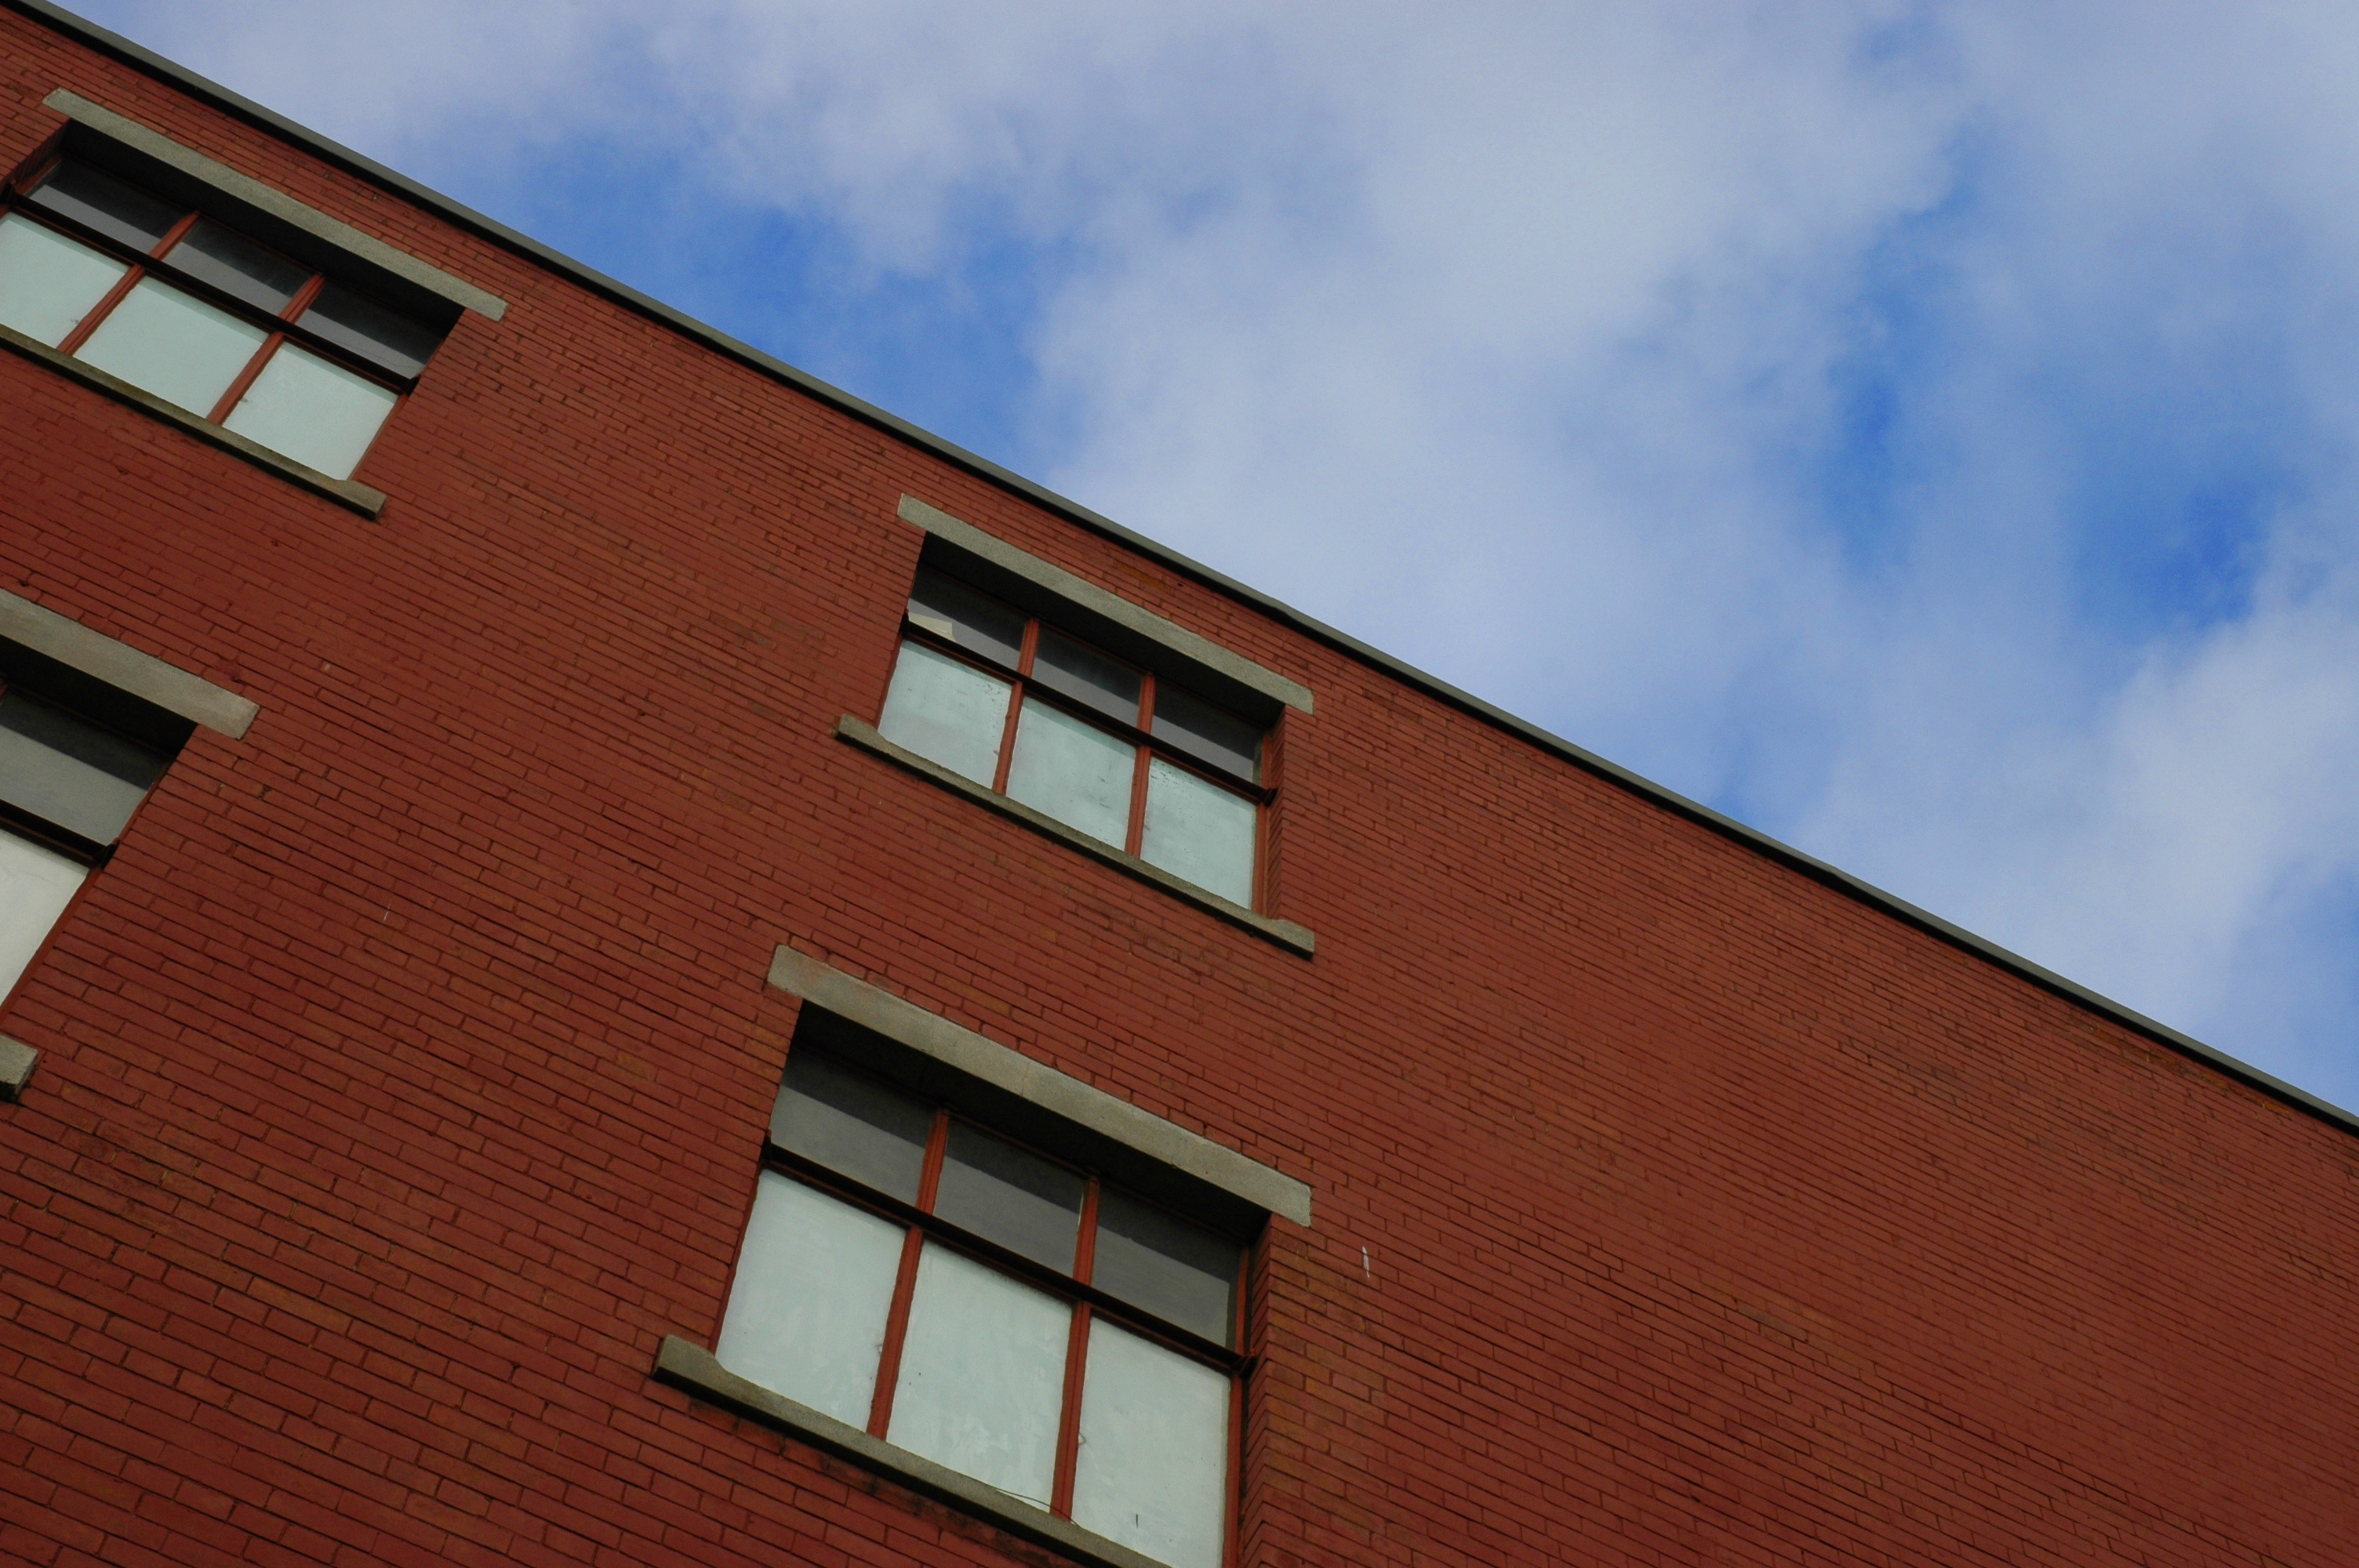 red brick building with blue sky